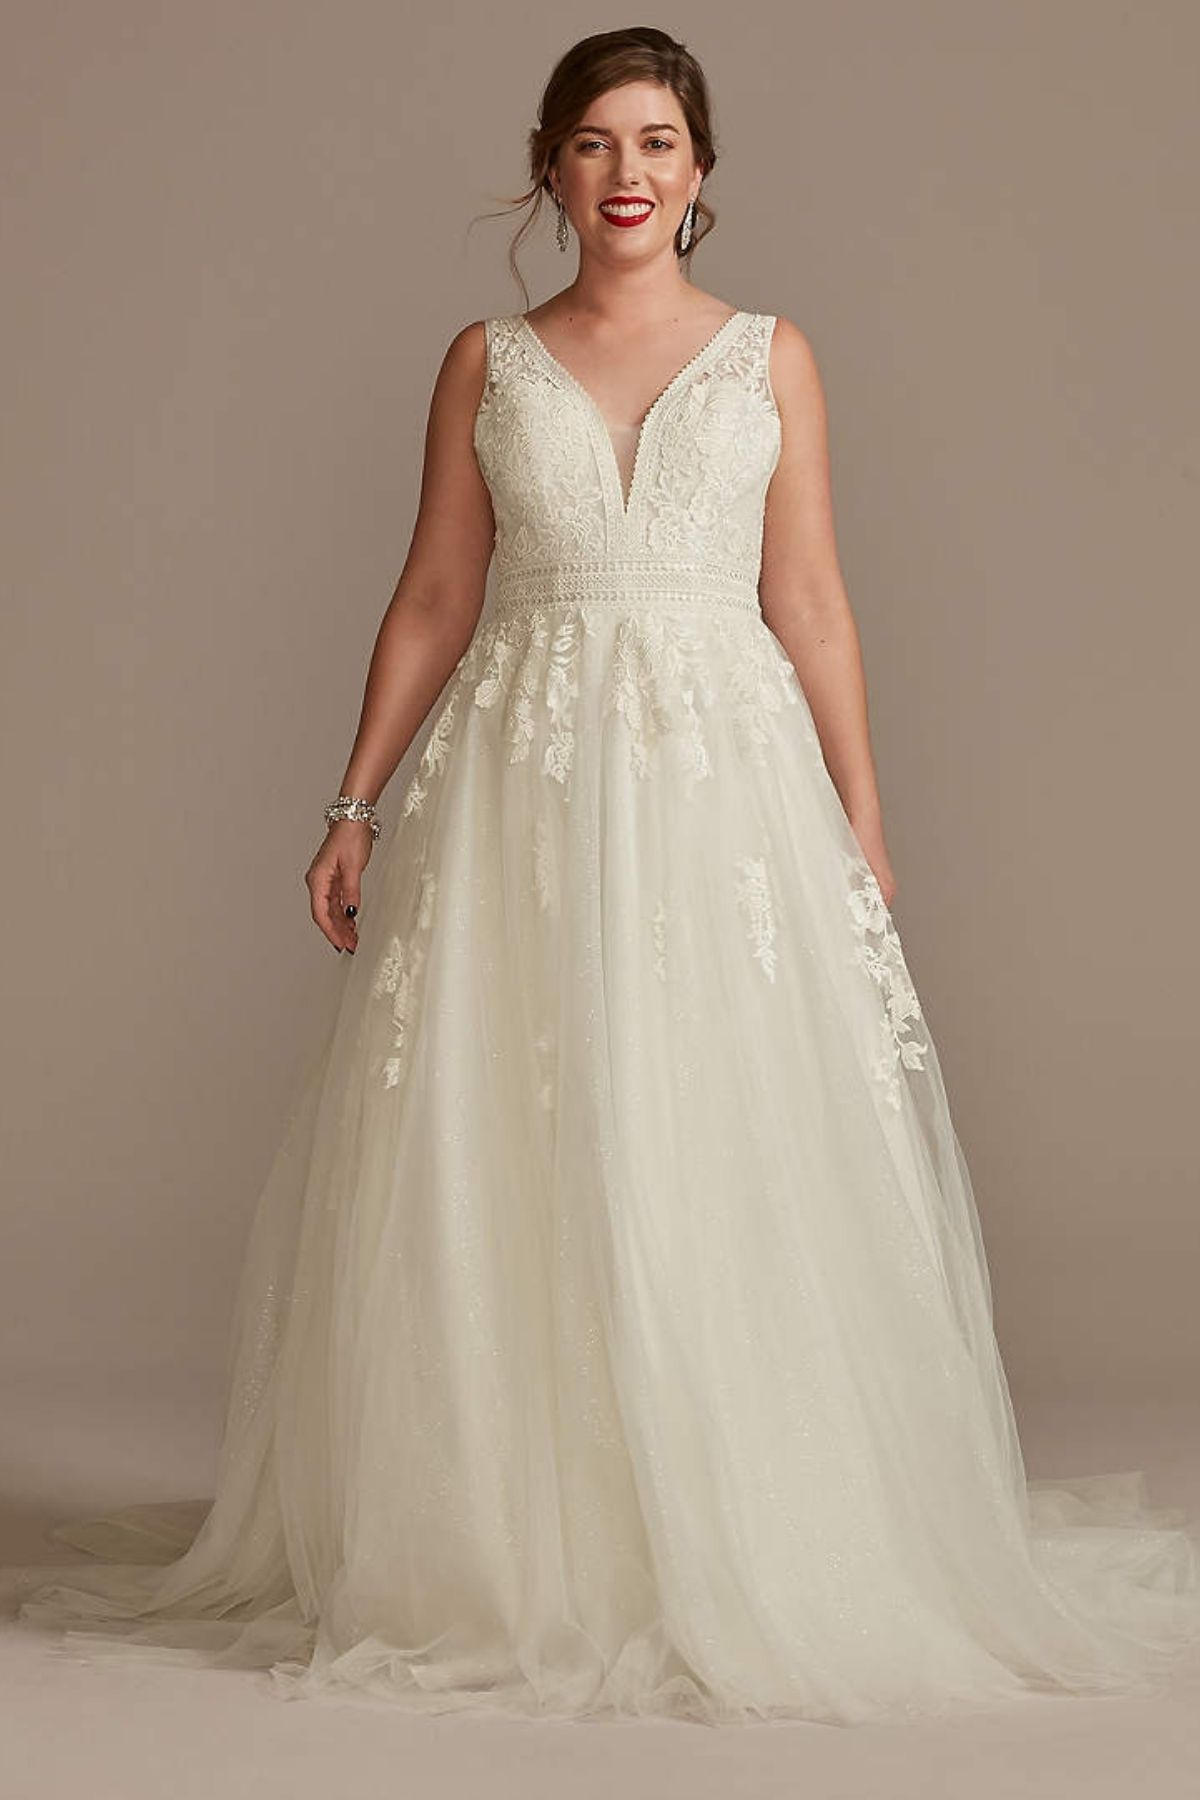 1. Embroidered V-Neck Wedding Dress with Tulle Skirt - Ballgown style bridal dresses under $800: Top 10 from David's Bridal